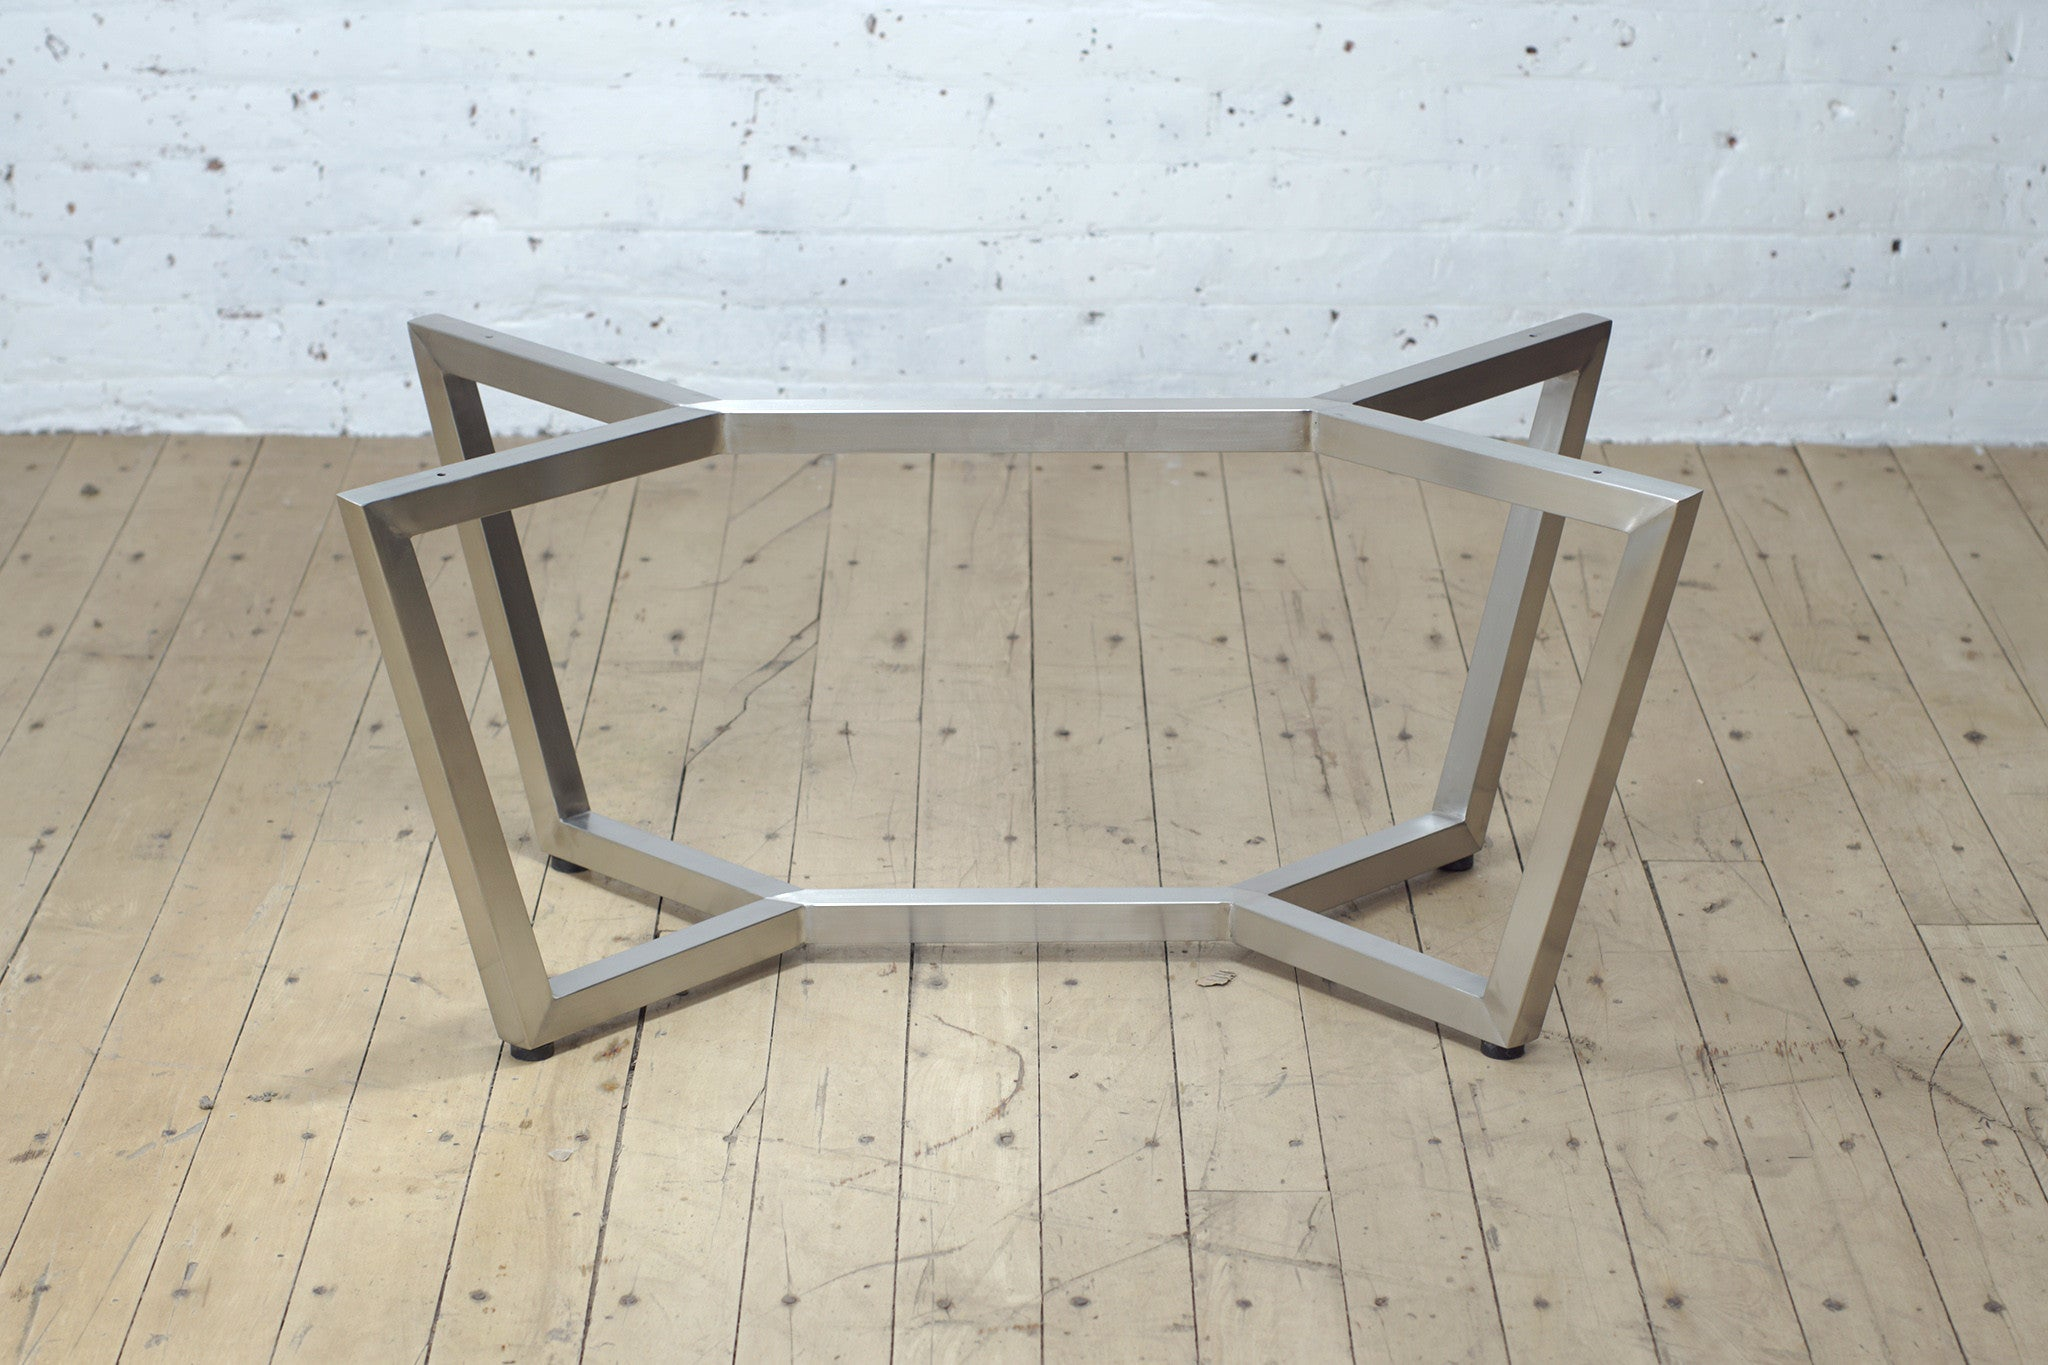 Cipher Coffee Table Base – from the source